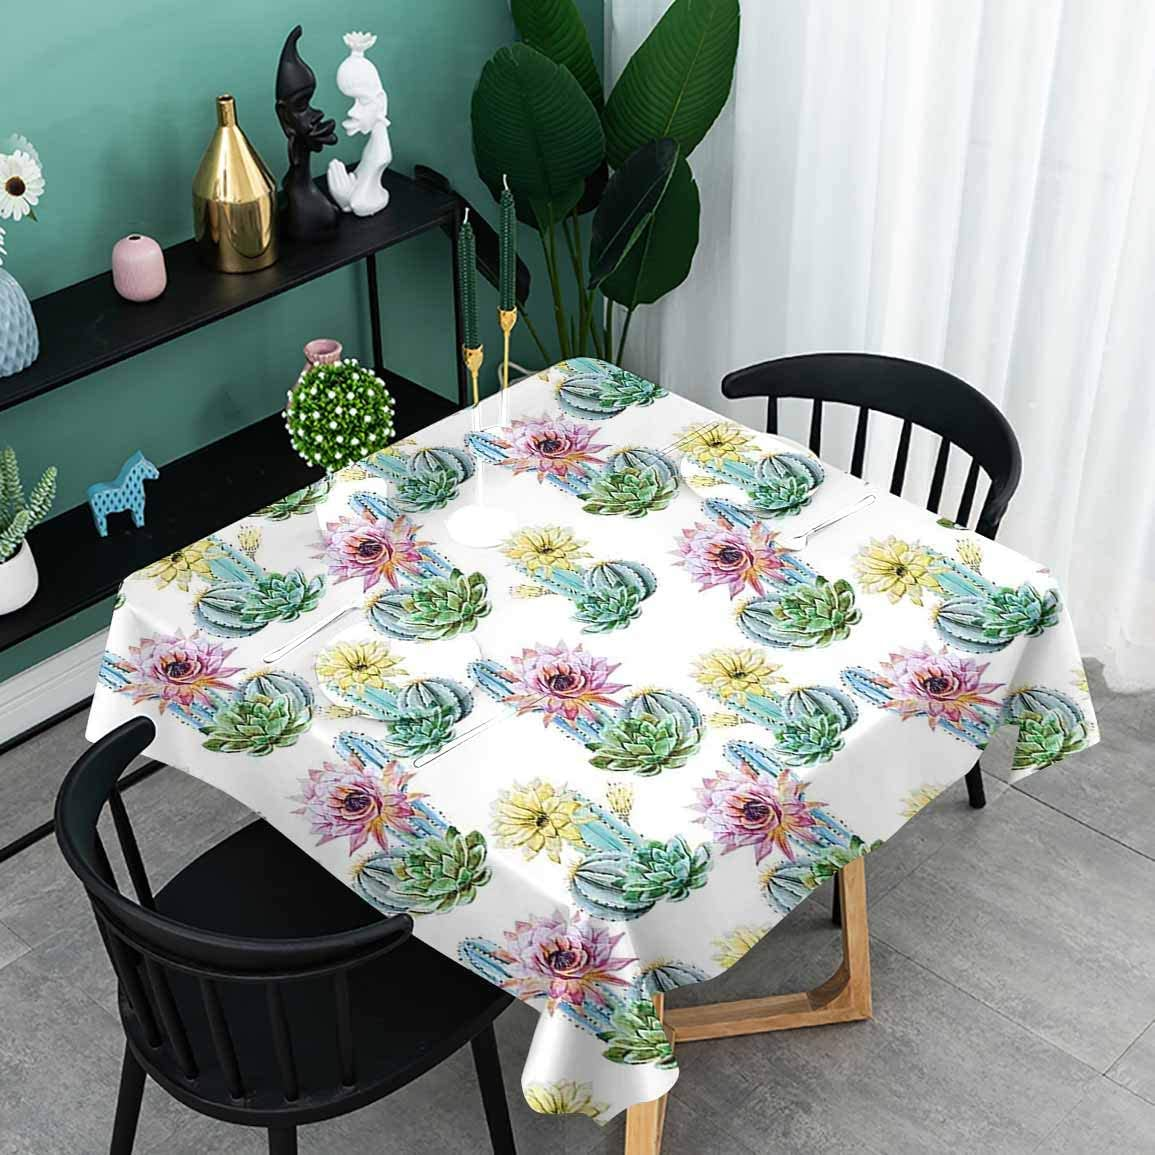 oobon Water-Proof Table Cover, Hot Desert South Mexican Vintage Plant Cactus Flowers with Spikes, Kitchen Rectangle Protective Tablecloth, 63x63 inch